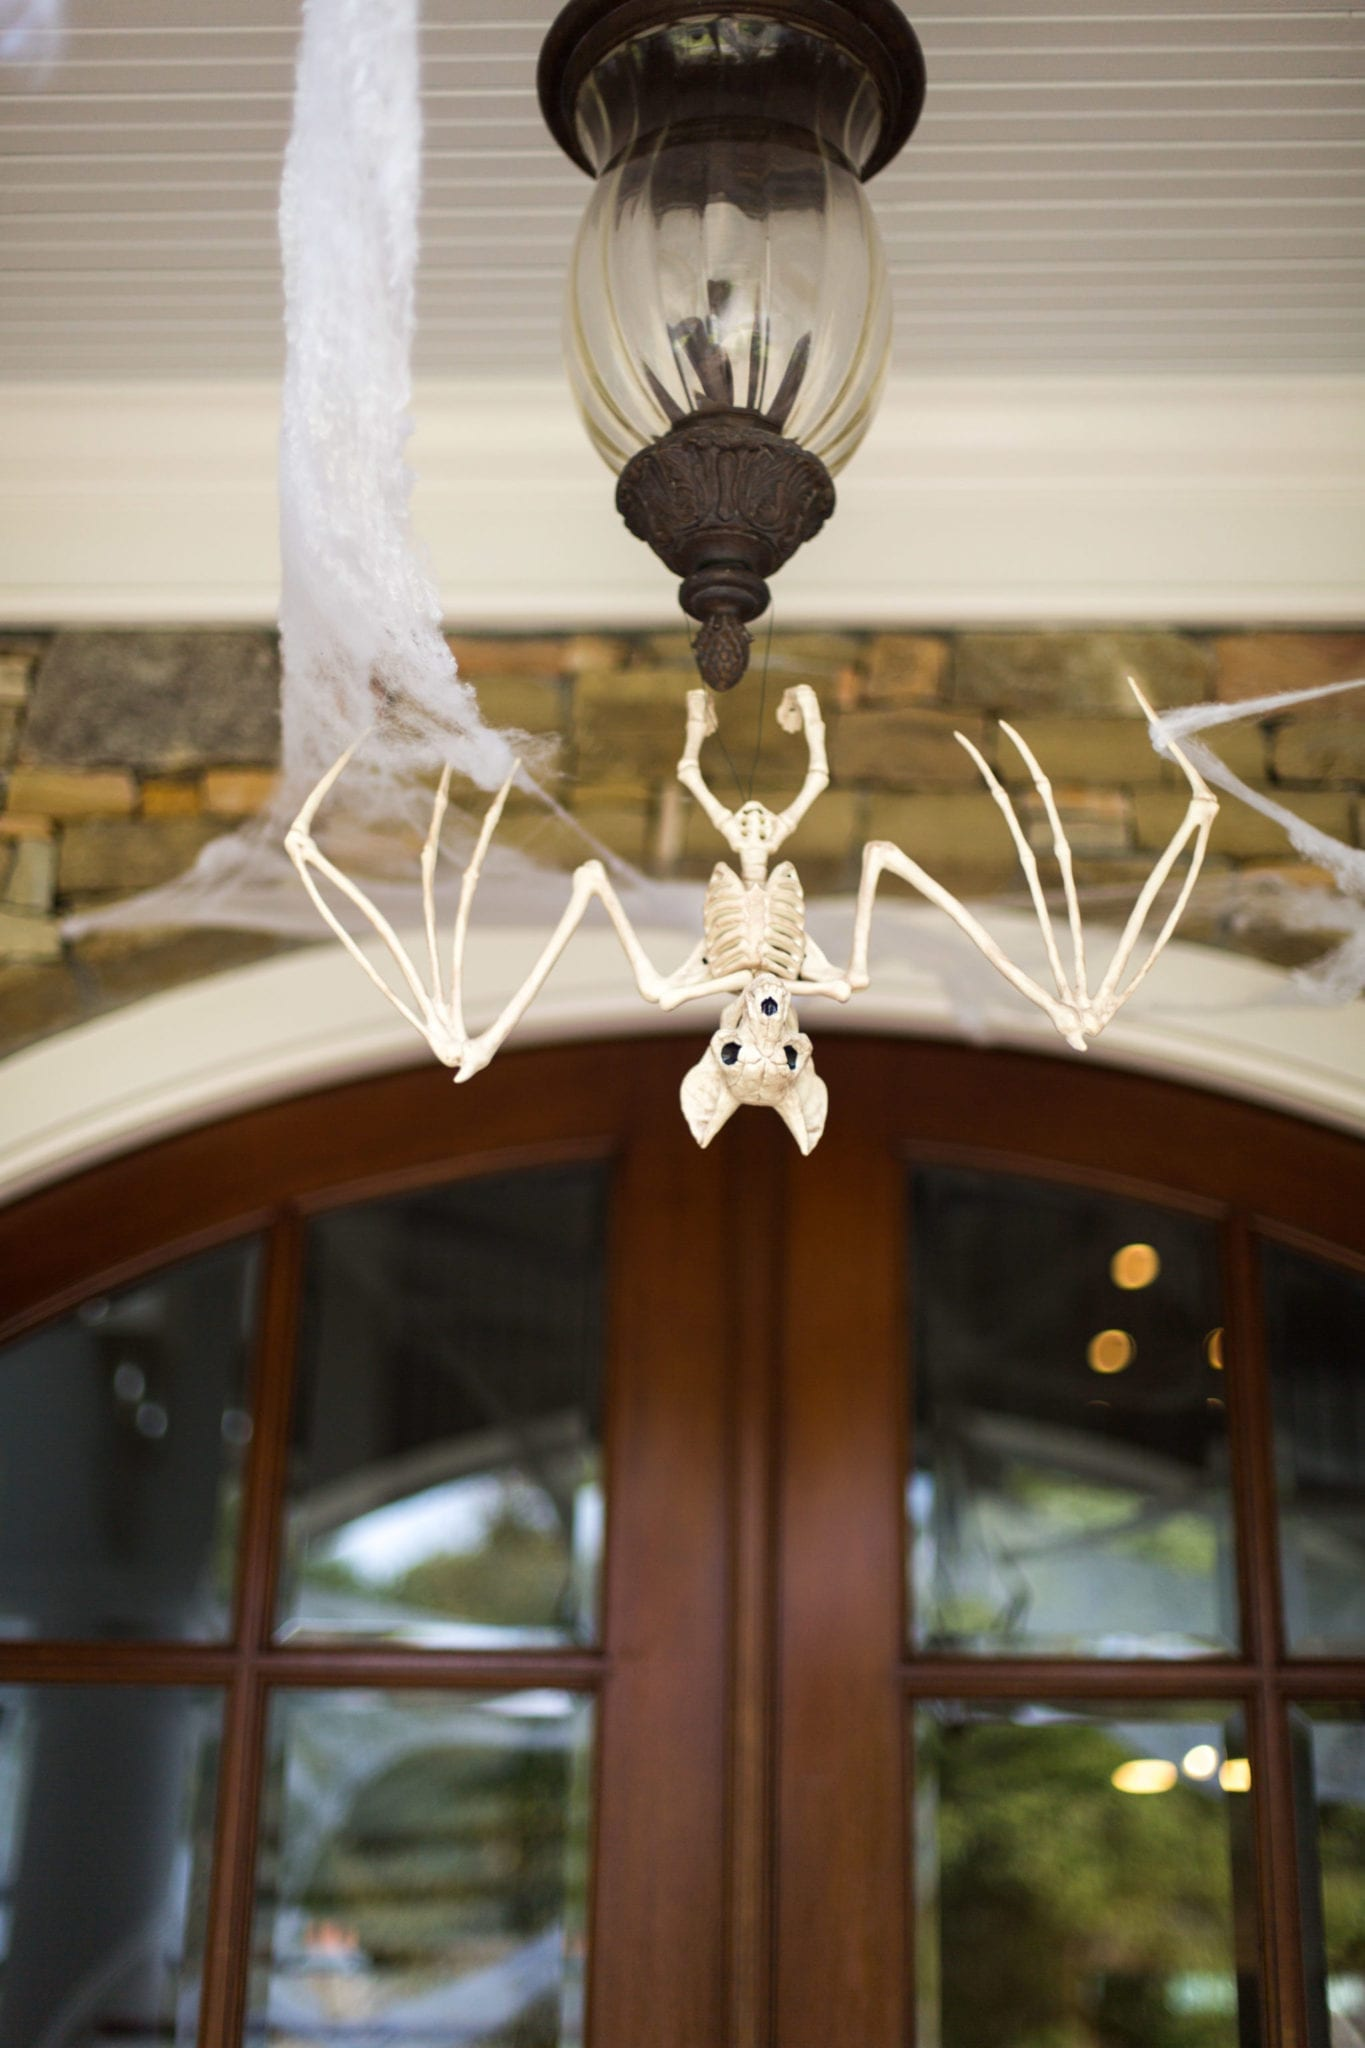 Bat Skeleton hanging from lantern.